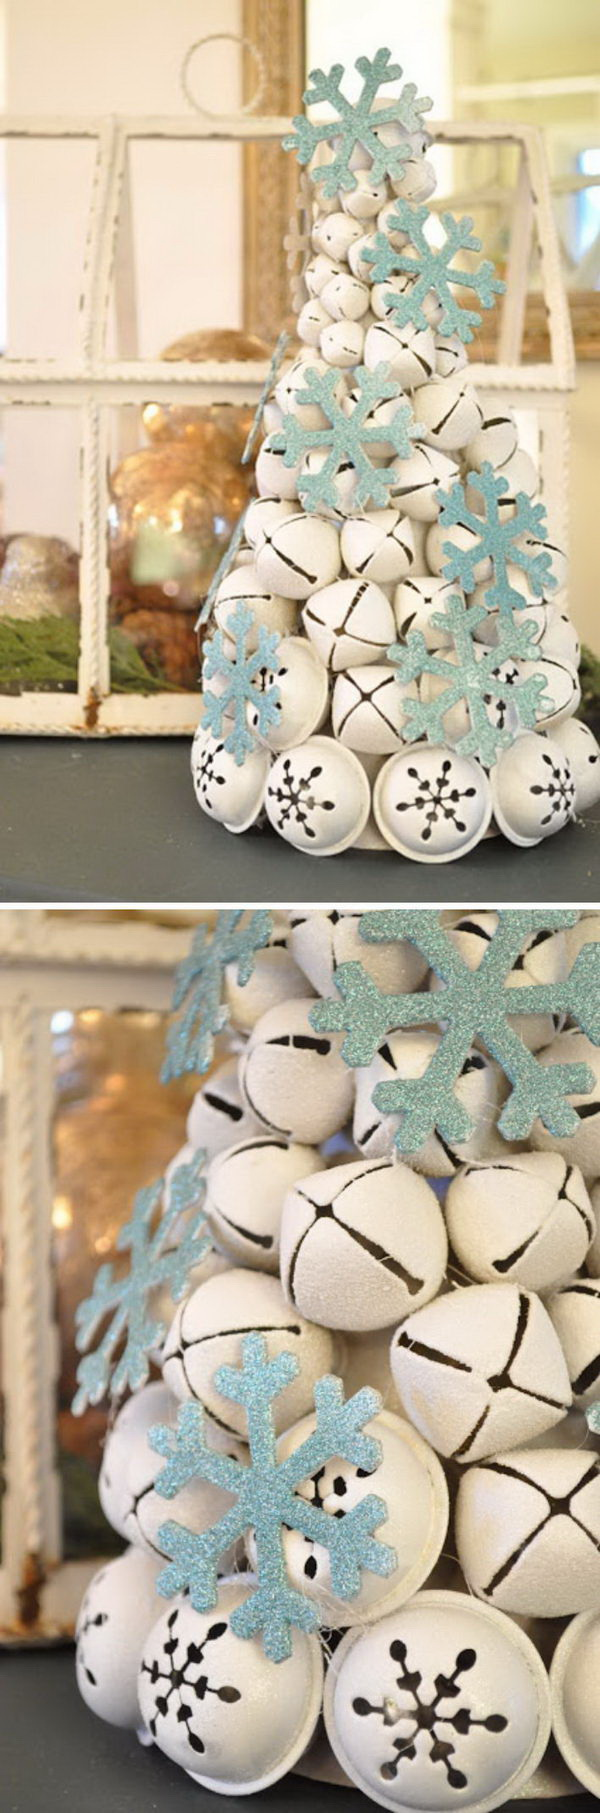 DIY Jingle Bell Tree. A DIY Christmas tree made with jingle bells paired with the snowflake ornamens makes this the perfect Christmas project for your mantlepiece.